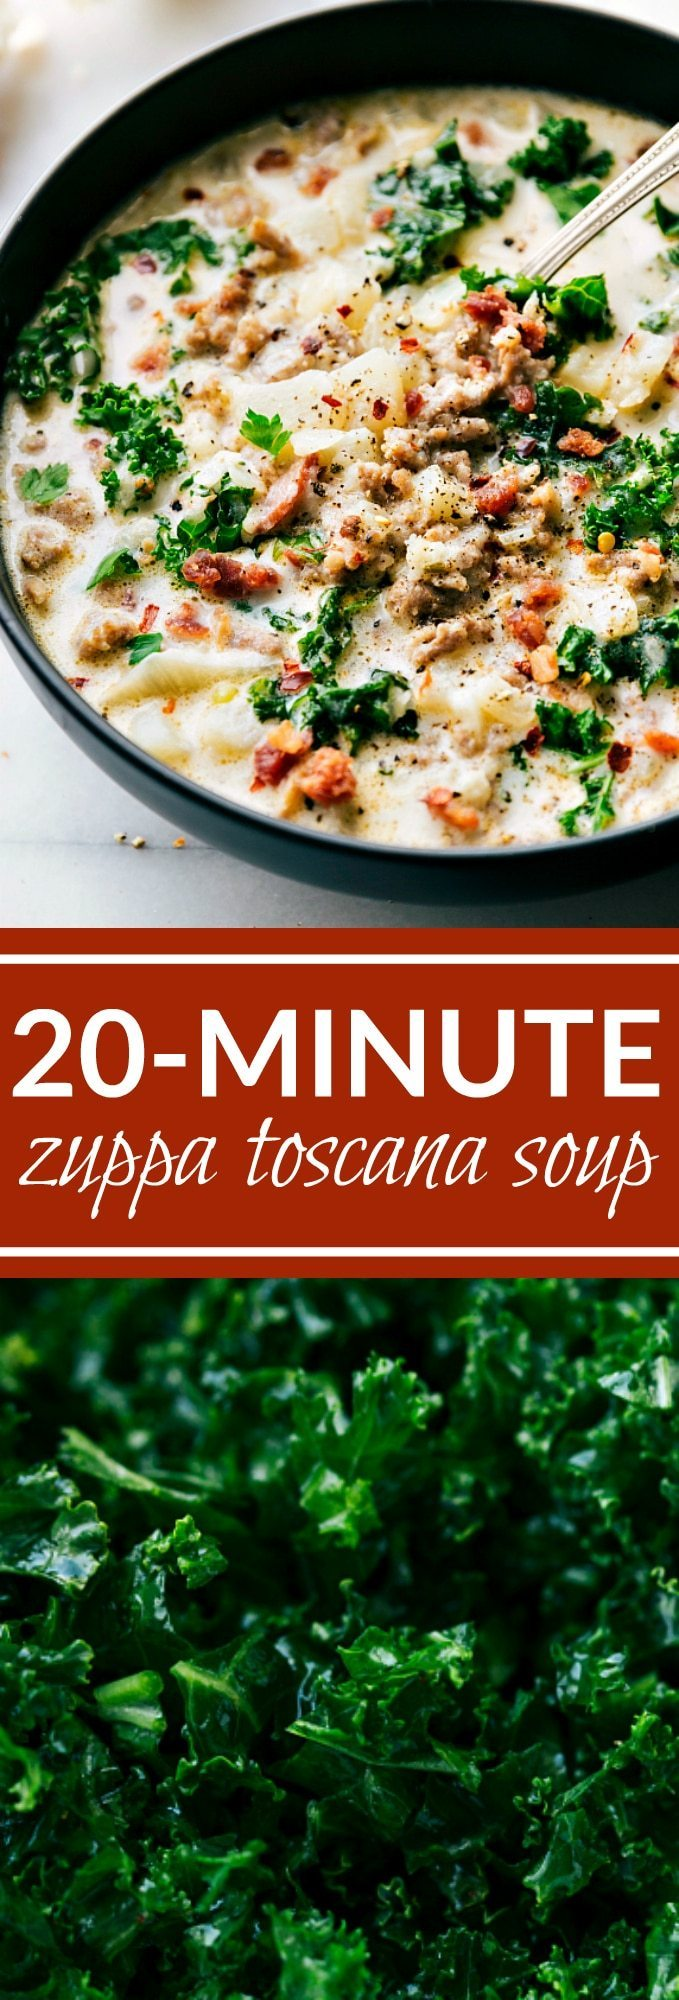 A copycat of the famous Olive Garden's Zuppa Toscana soup made in 20 minutes or less. via chelseasmessyapron.com